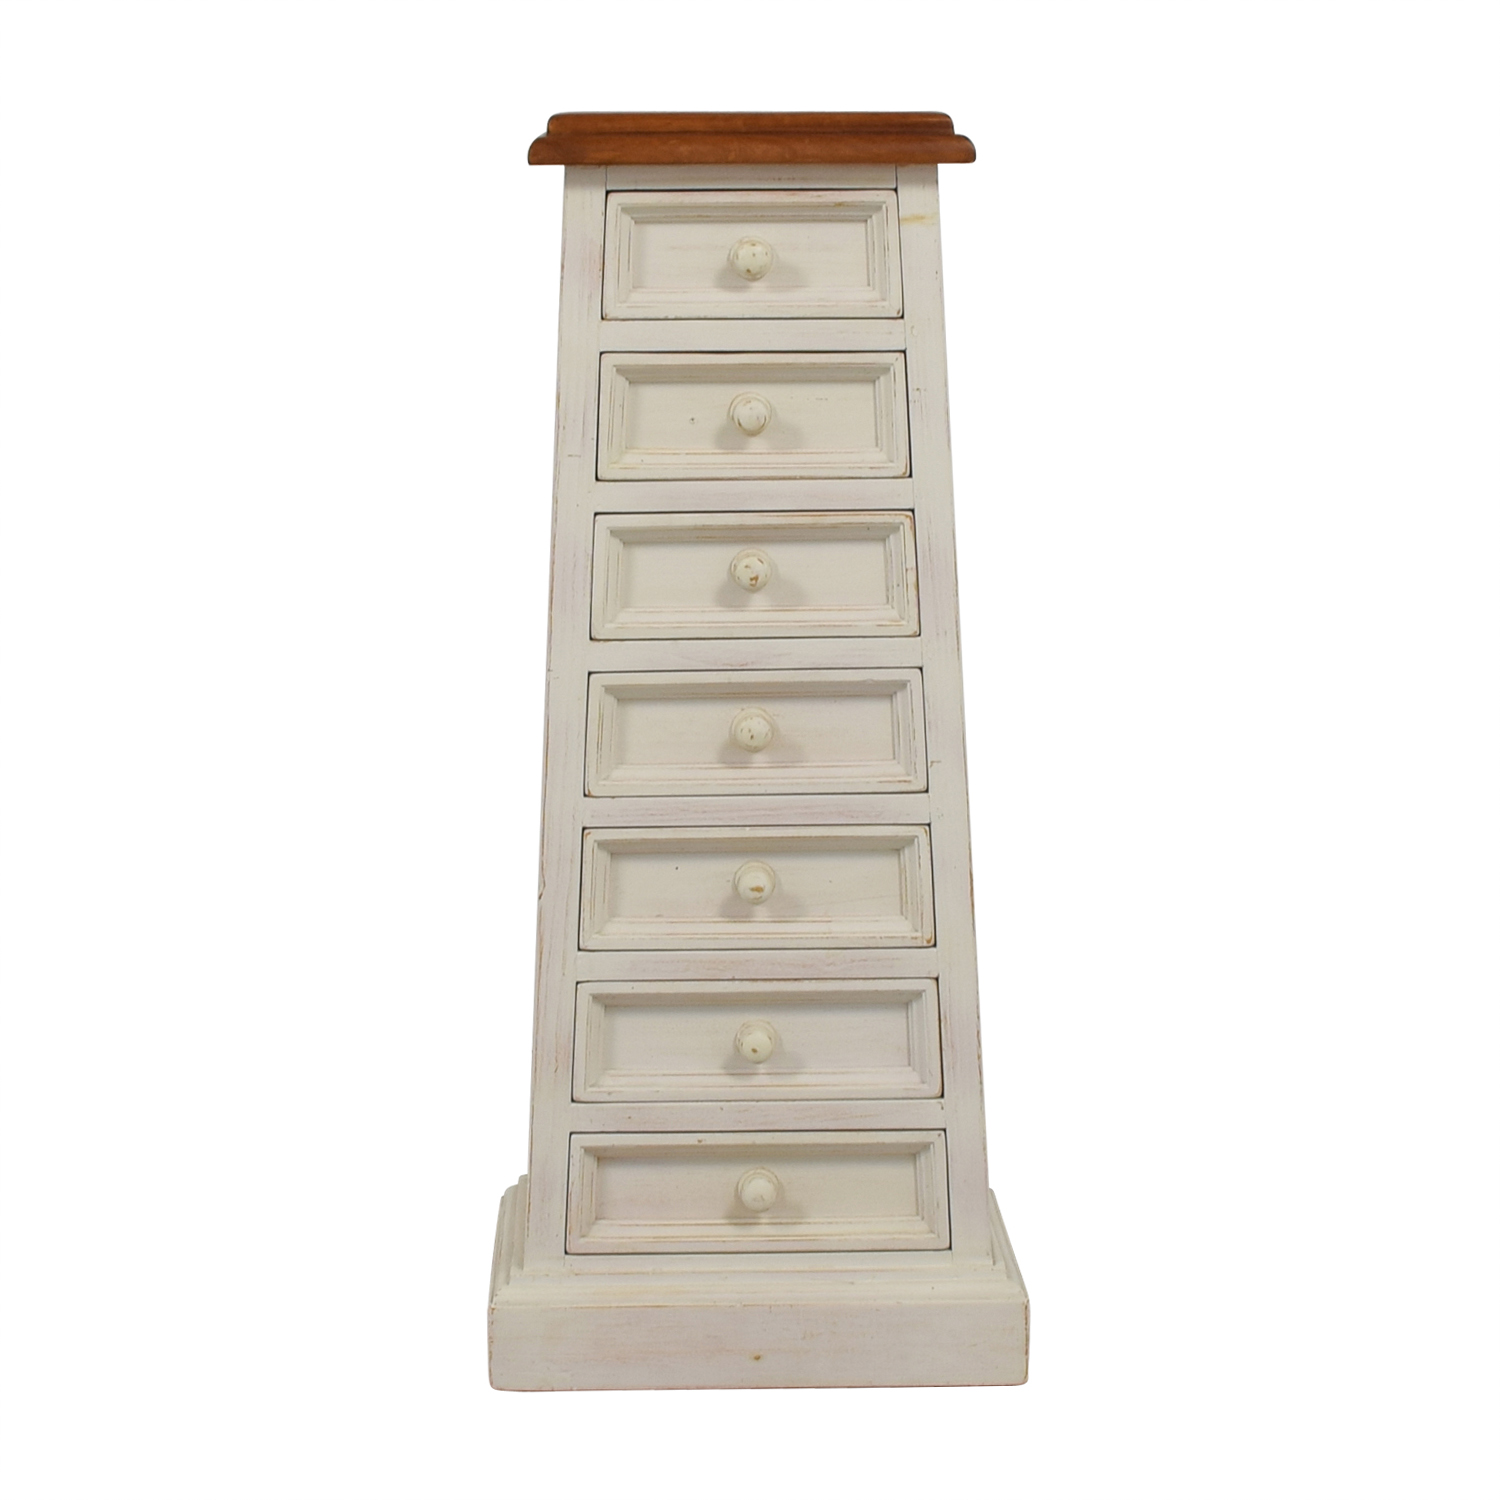 Shabby Chic Tall Narrow Dresser Storage